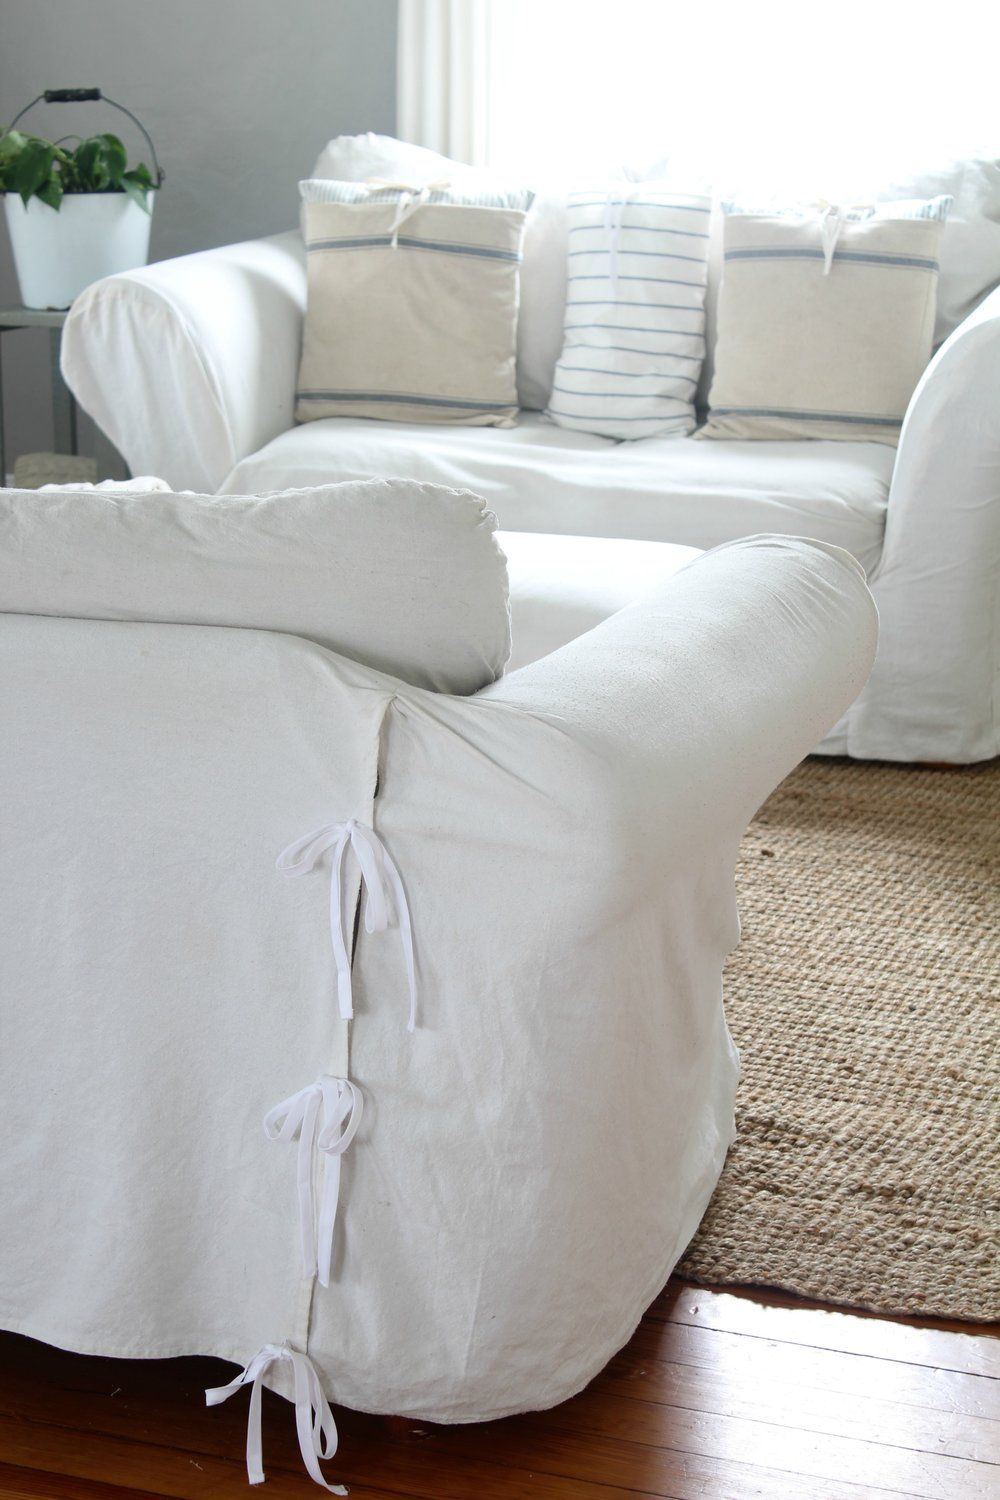 How To Bleach Drop Cloth To Make It Perfectly Soft And White Craft Ideas Couch Covers Diy